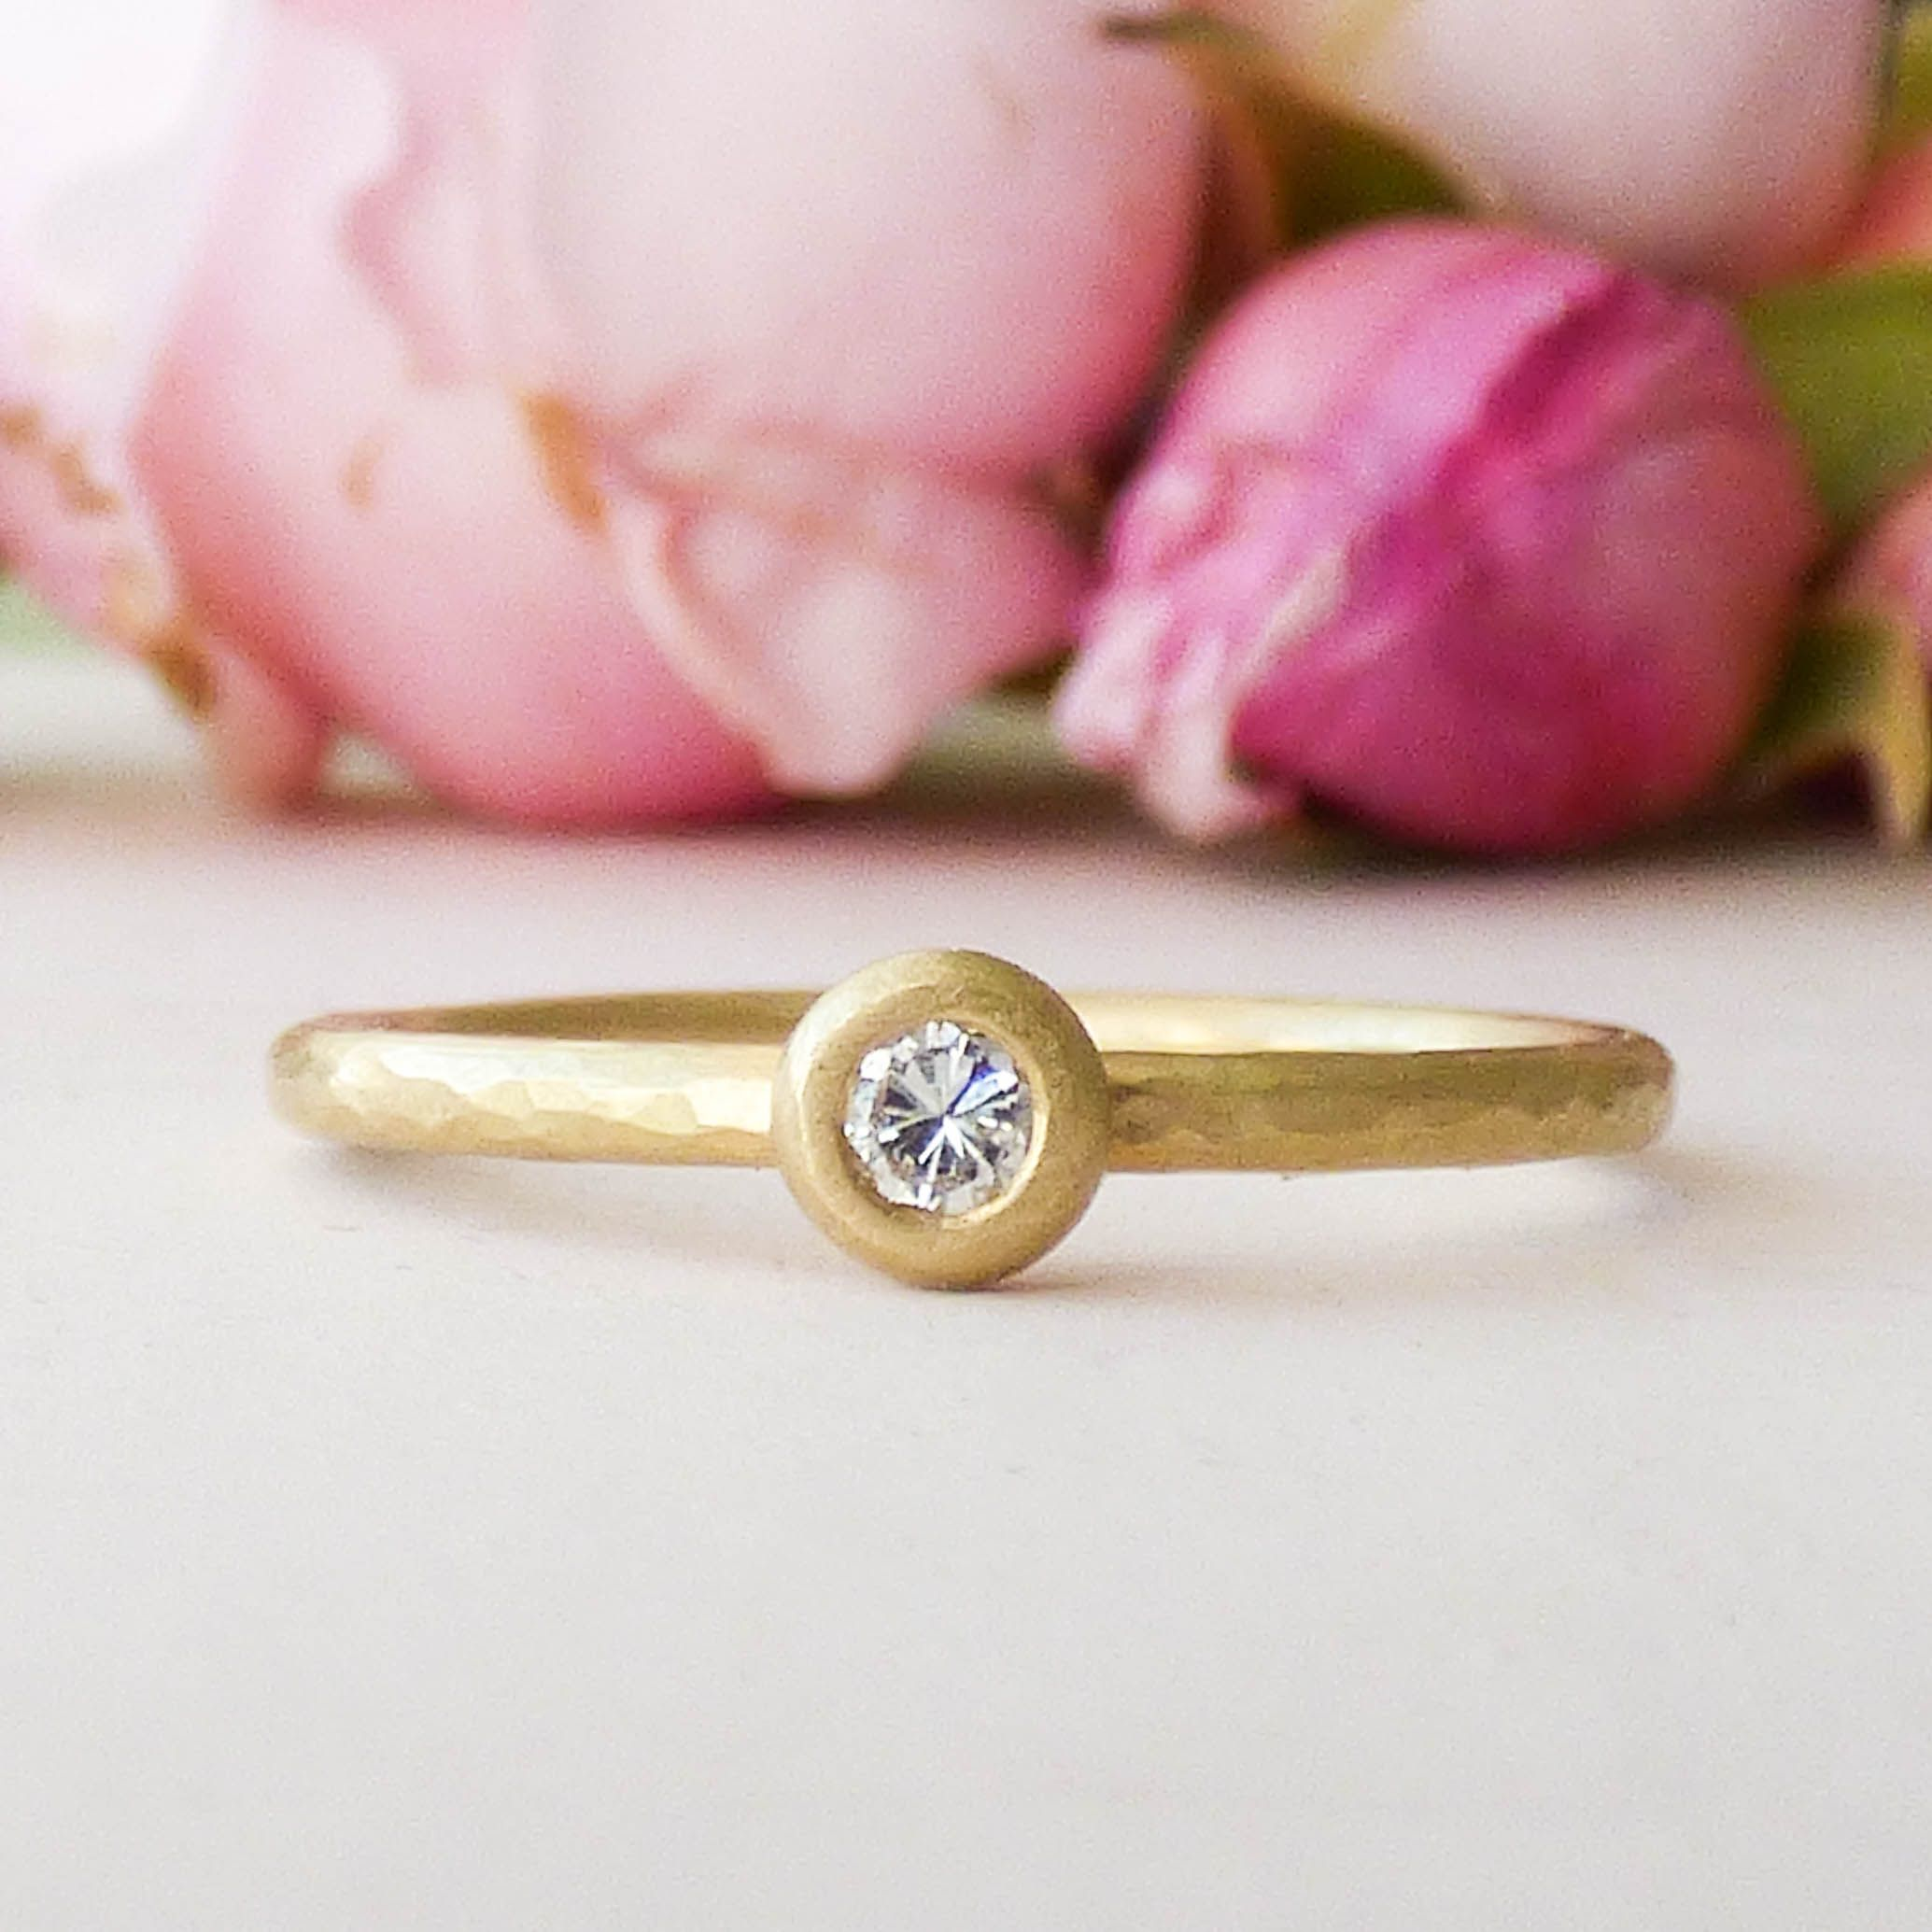 Lila Ethical Engagement Ring in 18ct Fairtrade Gold | Ethical ...